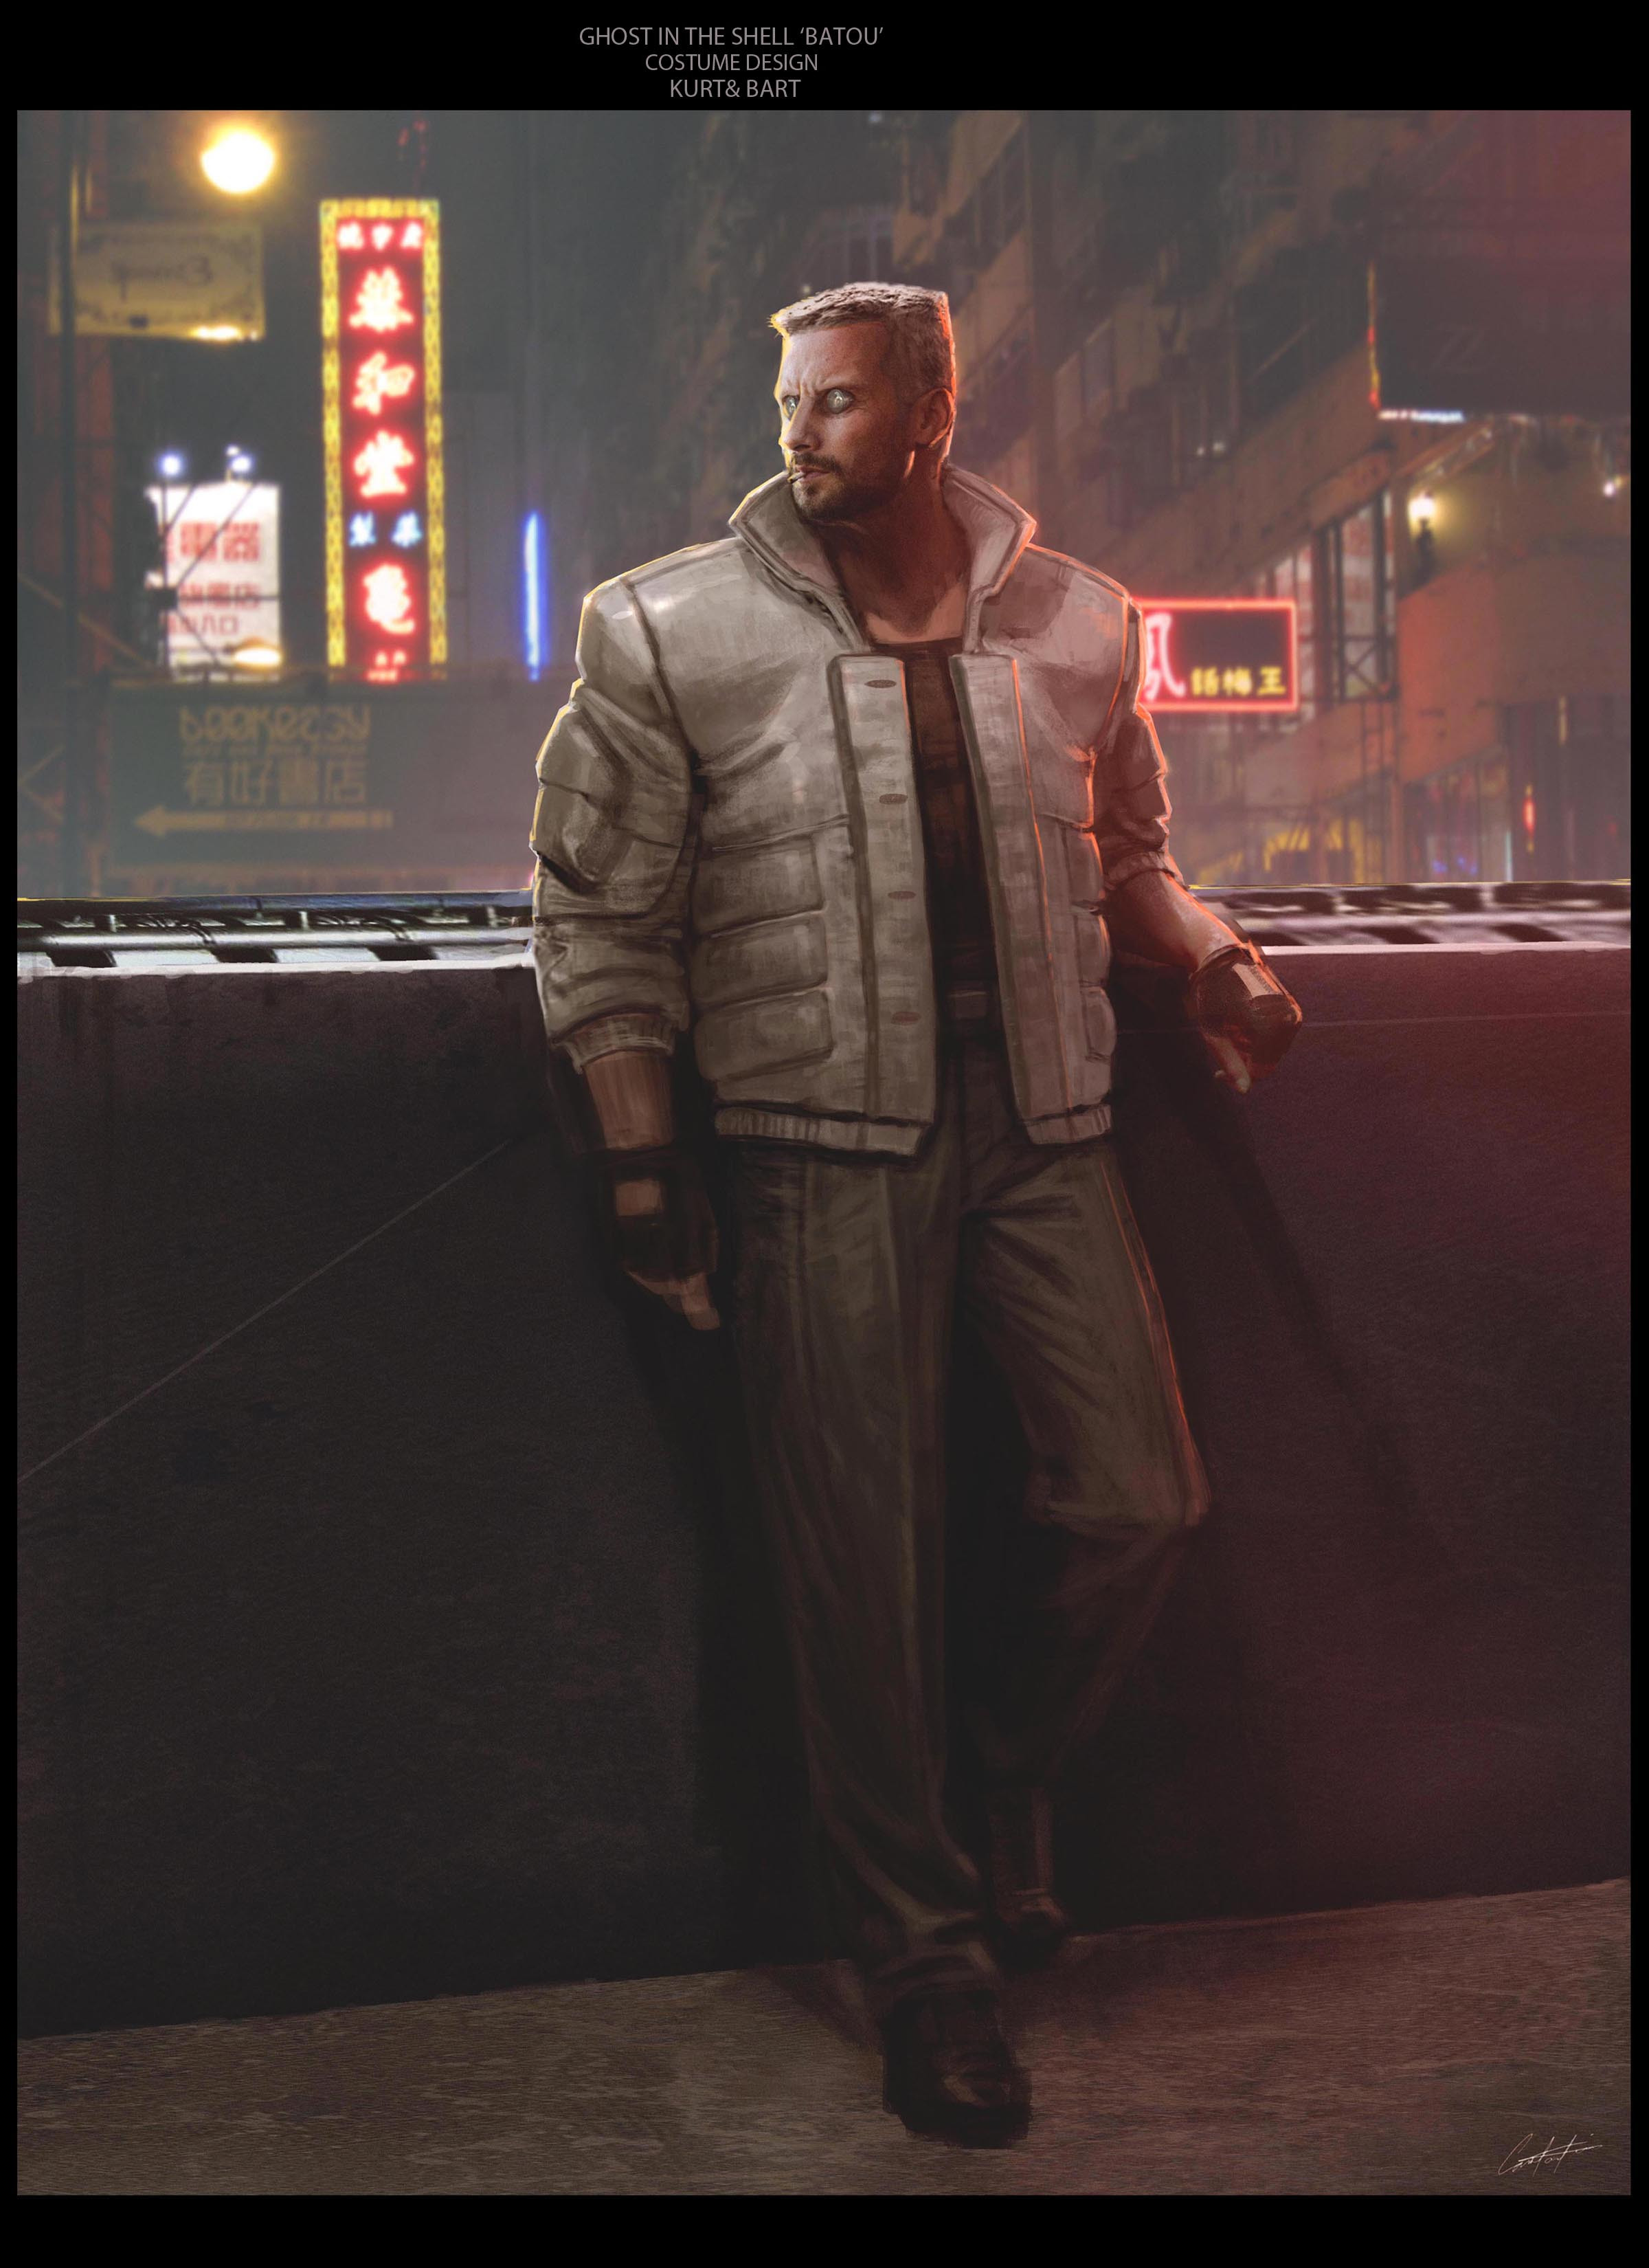 """Ghost in the Shell 'Batou"""""""